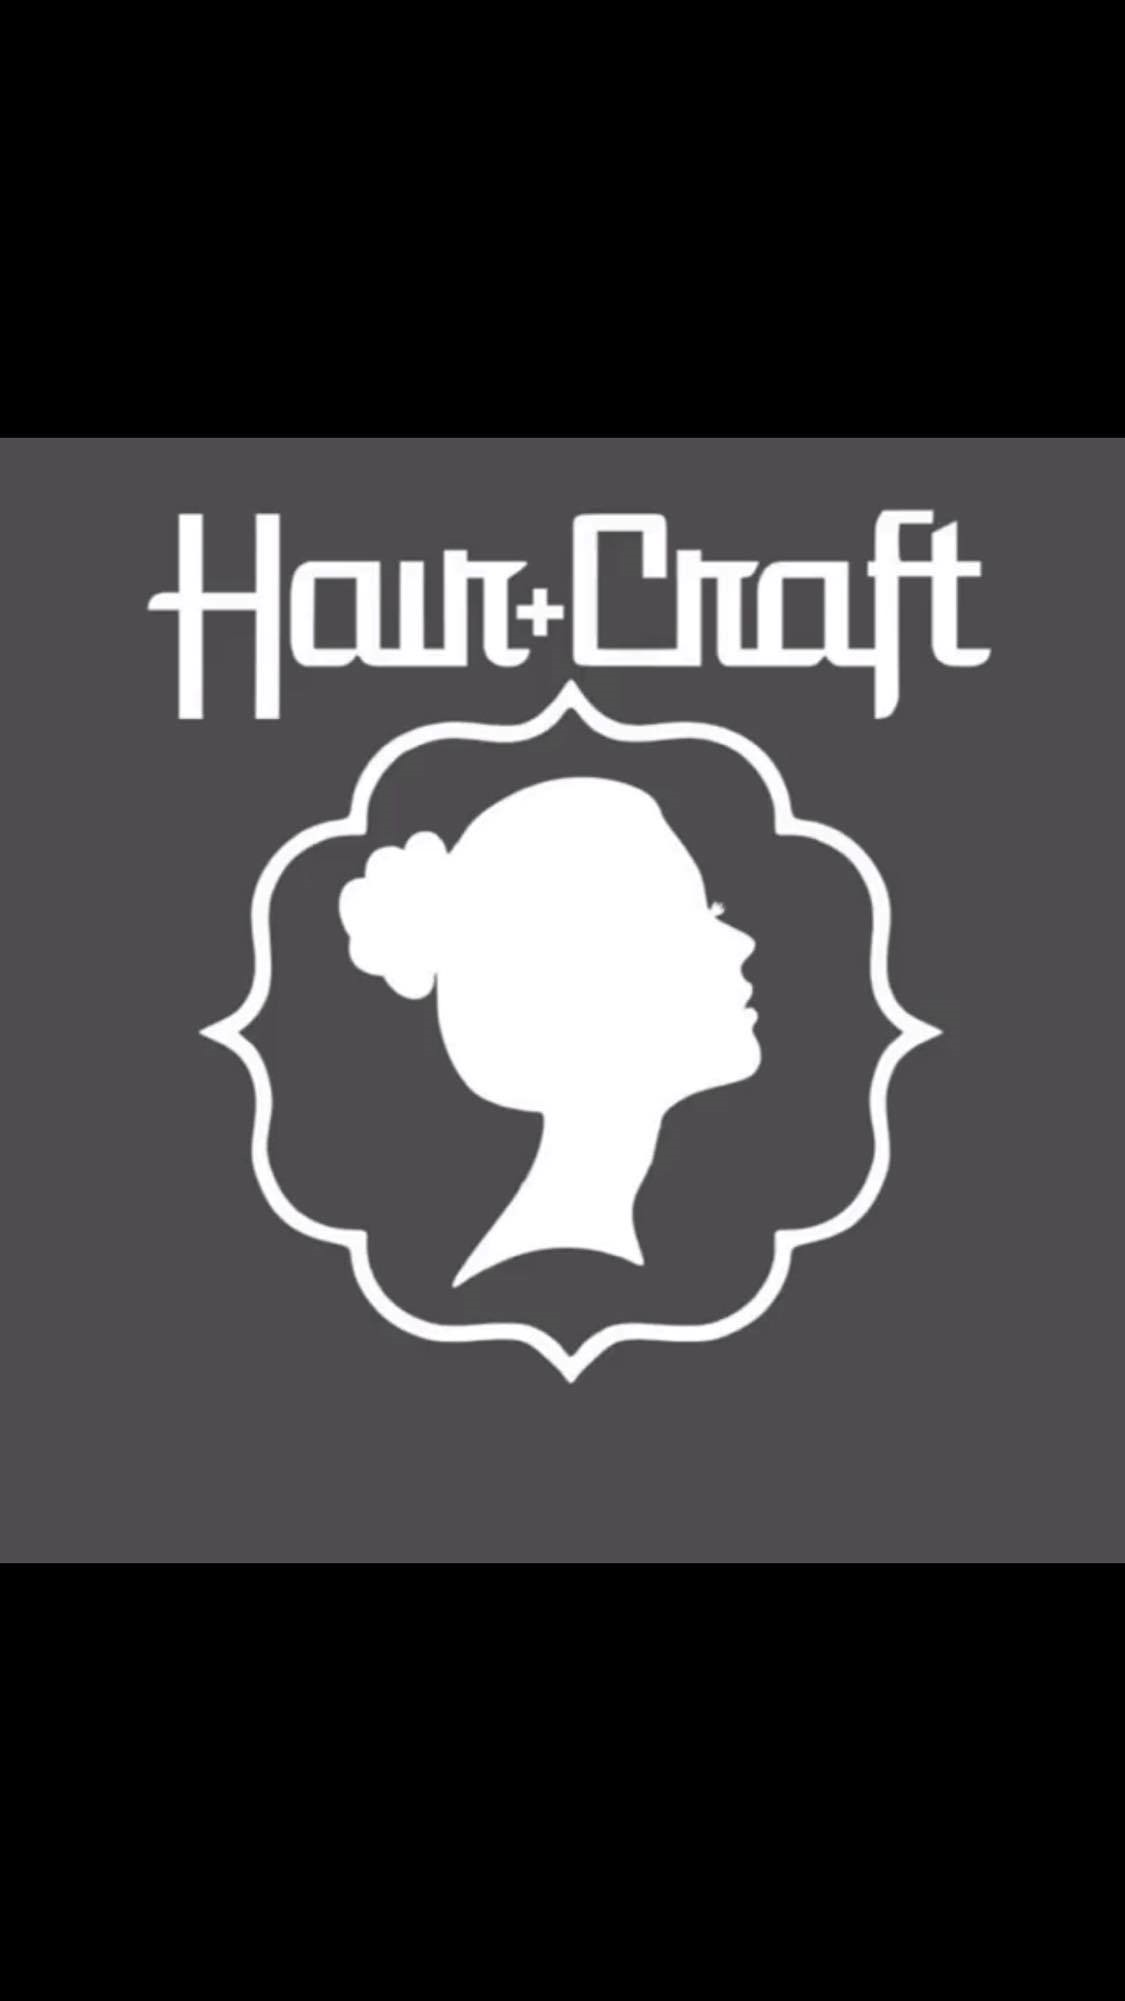 HAIR CRAFT